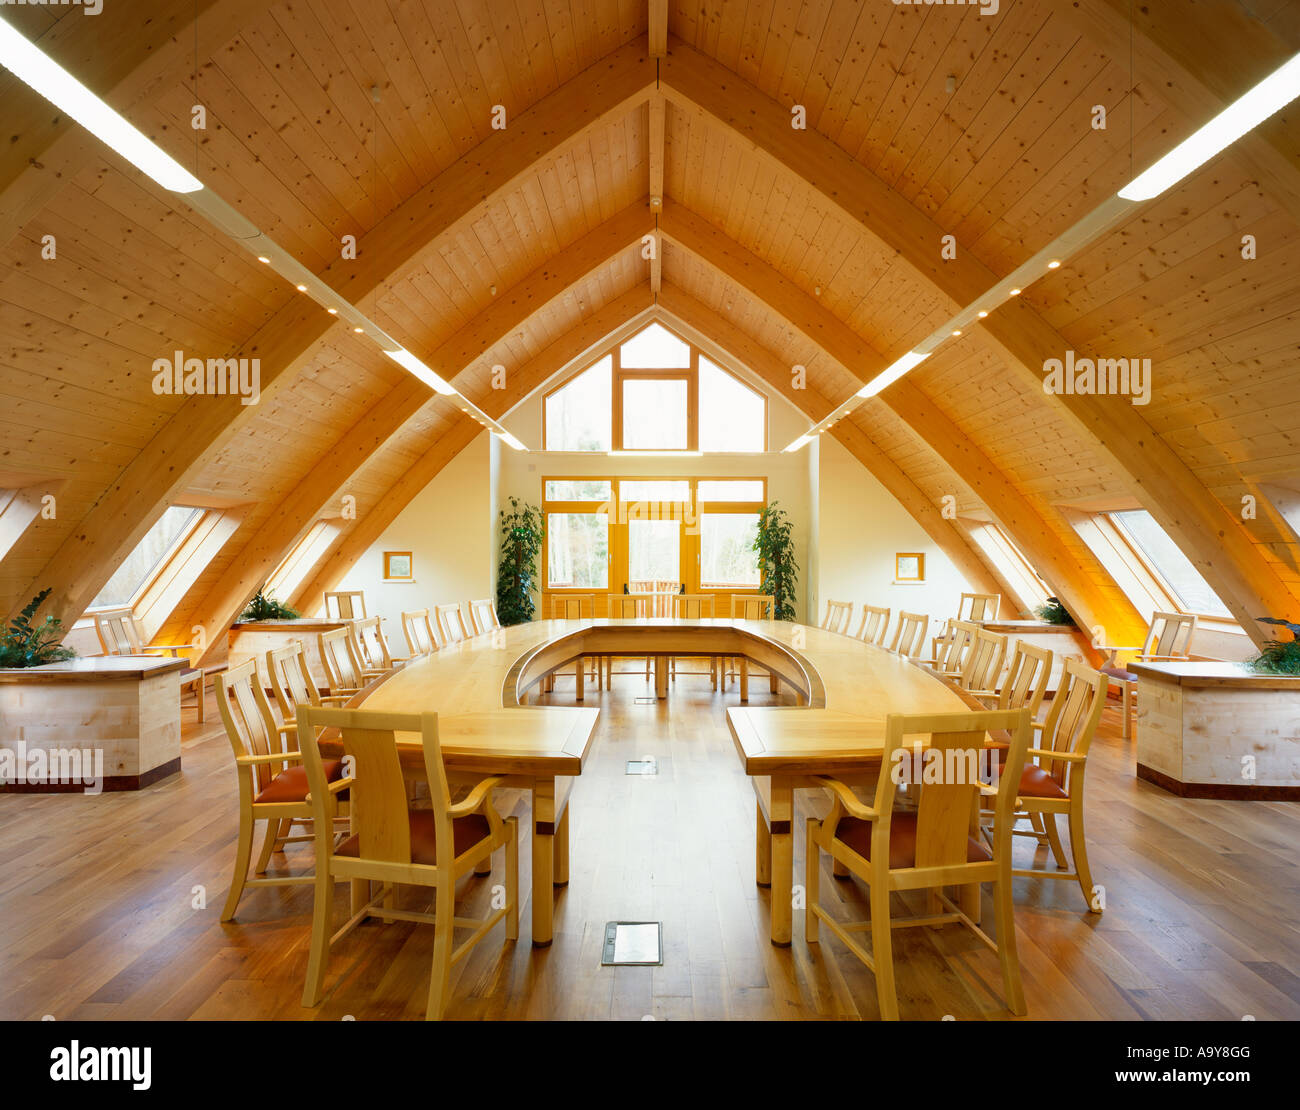 Ceiling Timber: Timber Ceiling Stock Photos & Timber Ceiling Stock Images